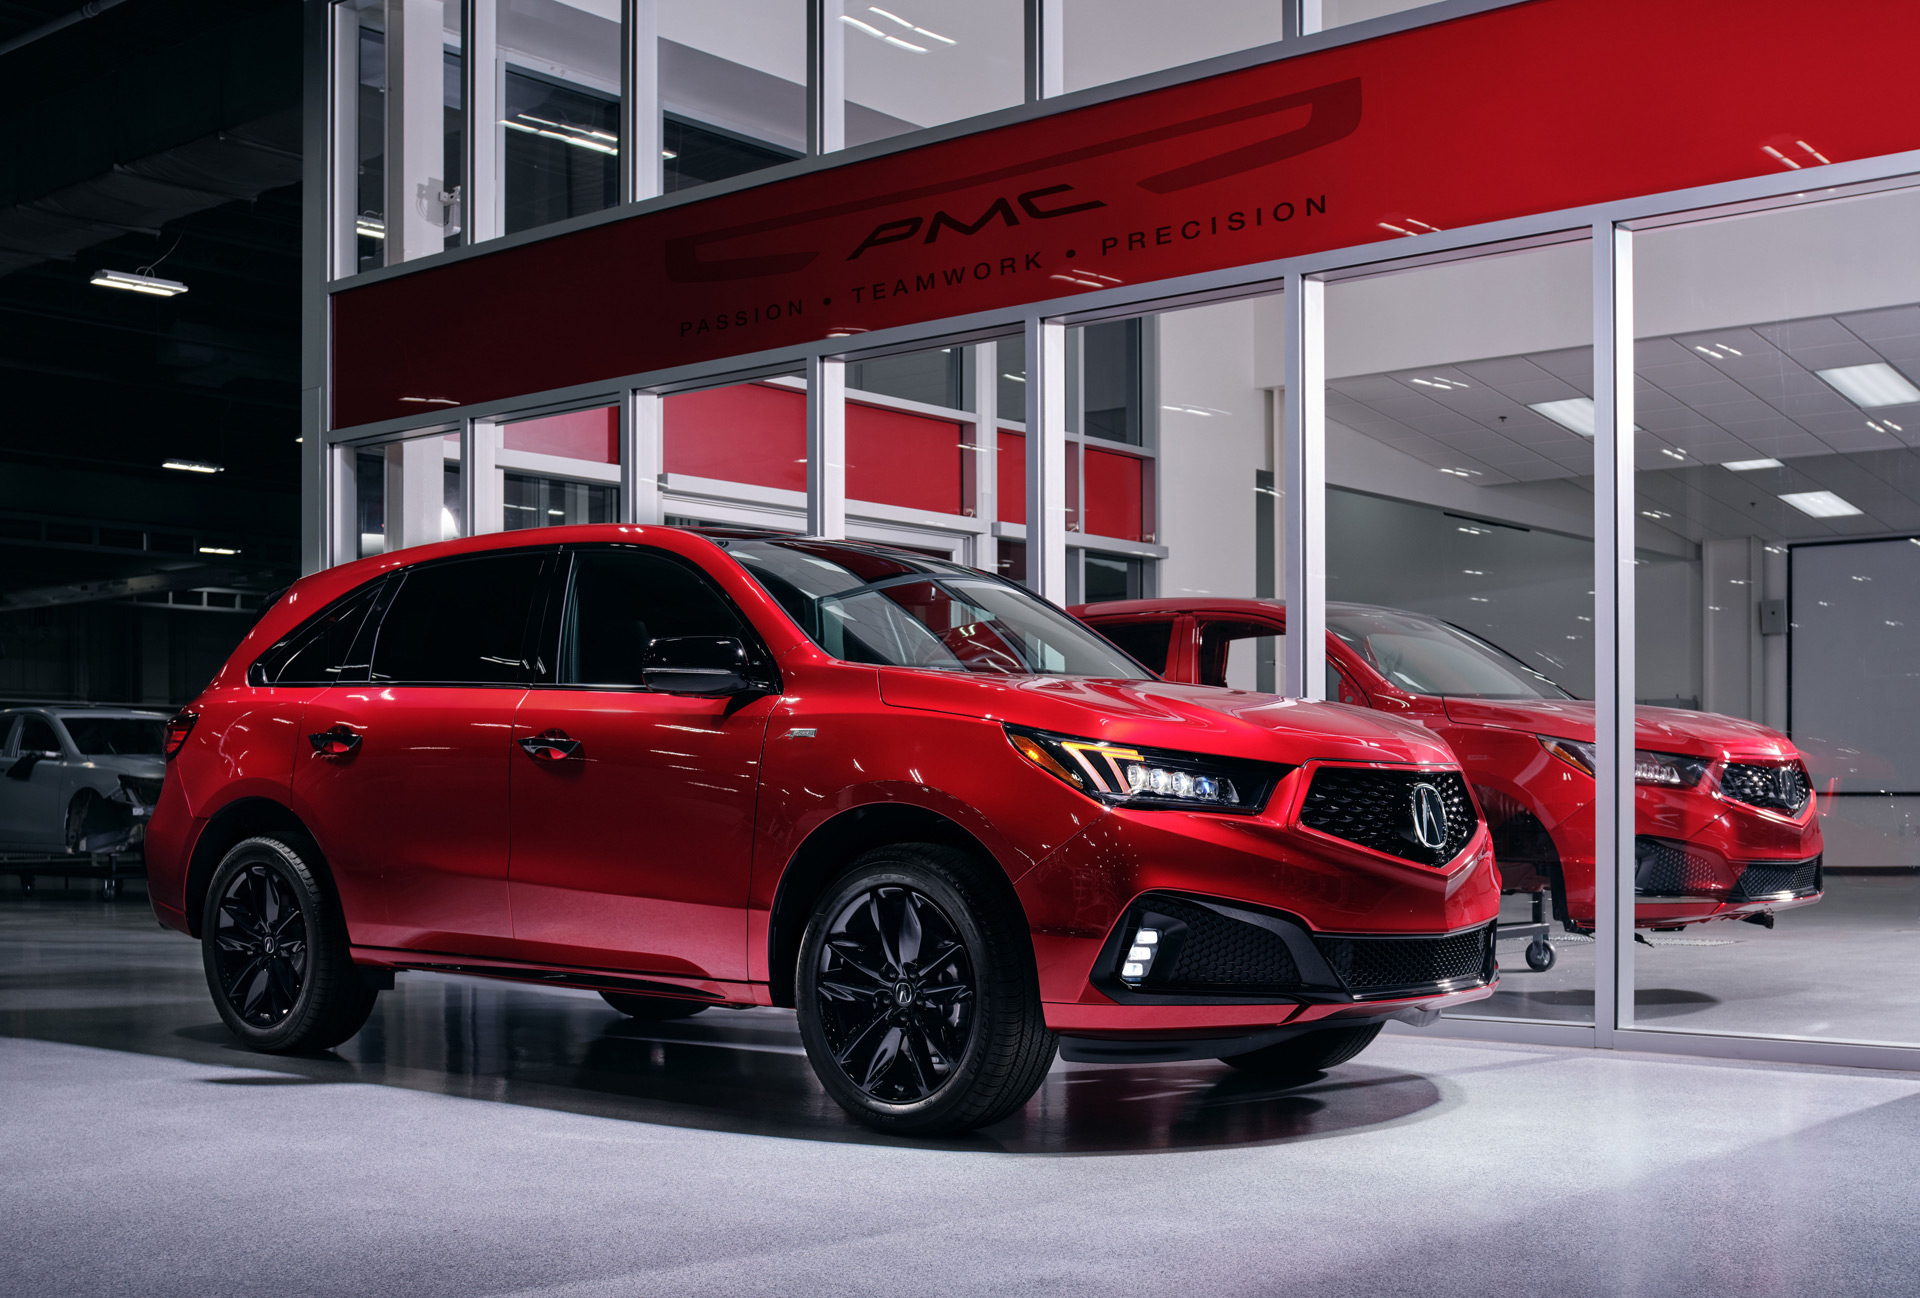 Plans For Acura Mdx Type S New Compact Sedan Revealed In Alleged Dealer Briefing